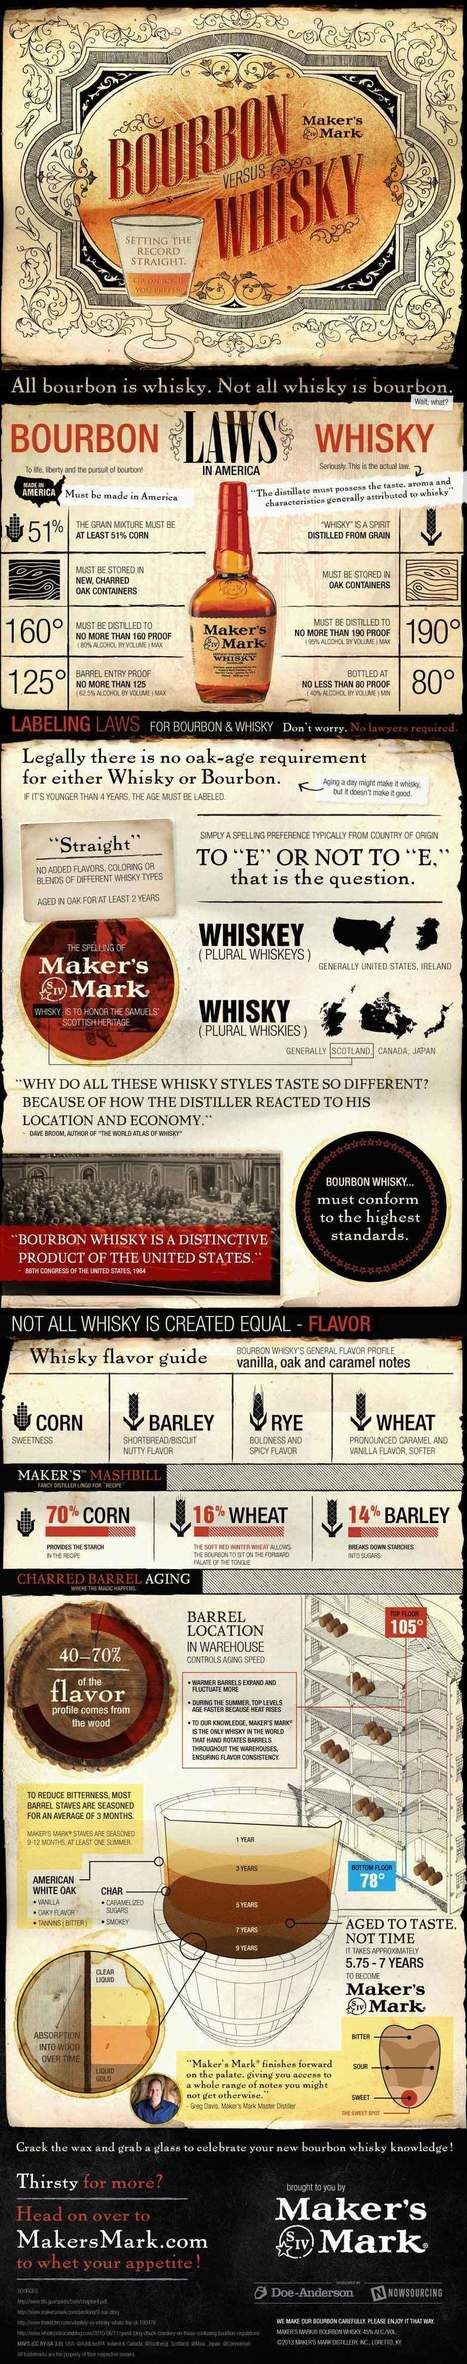 Bourbon vs Whisky: Setting the Record Straight [Infographic] | whisky | Scoop.it